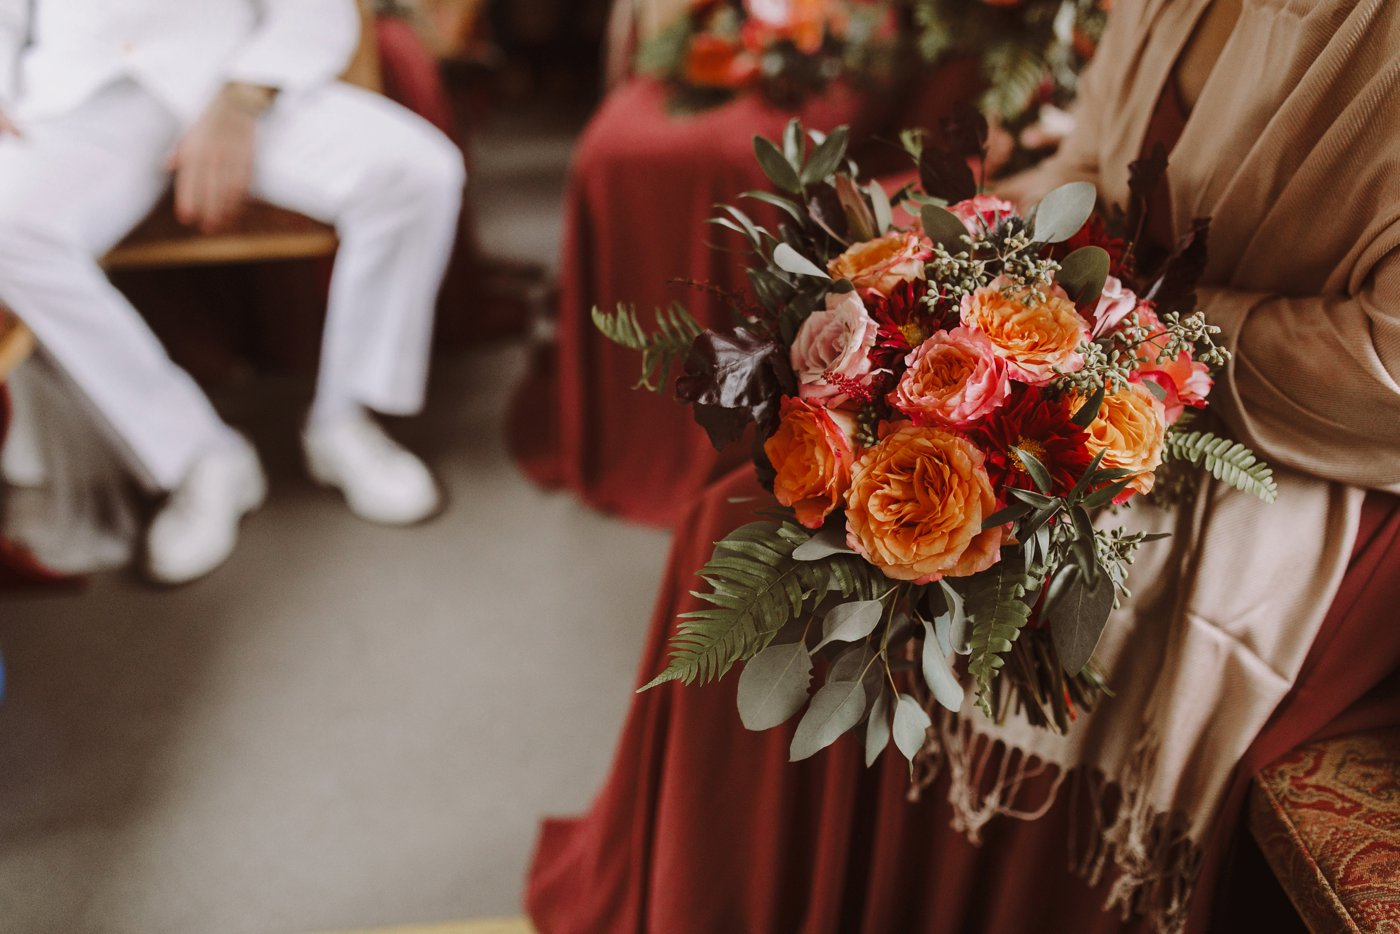 Downtown USNA Annapolis Maryland wedding photography My Flower Box bridal bouquet